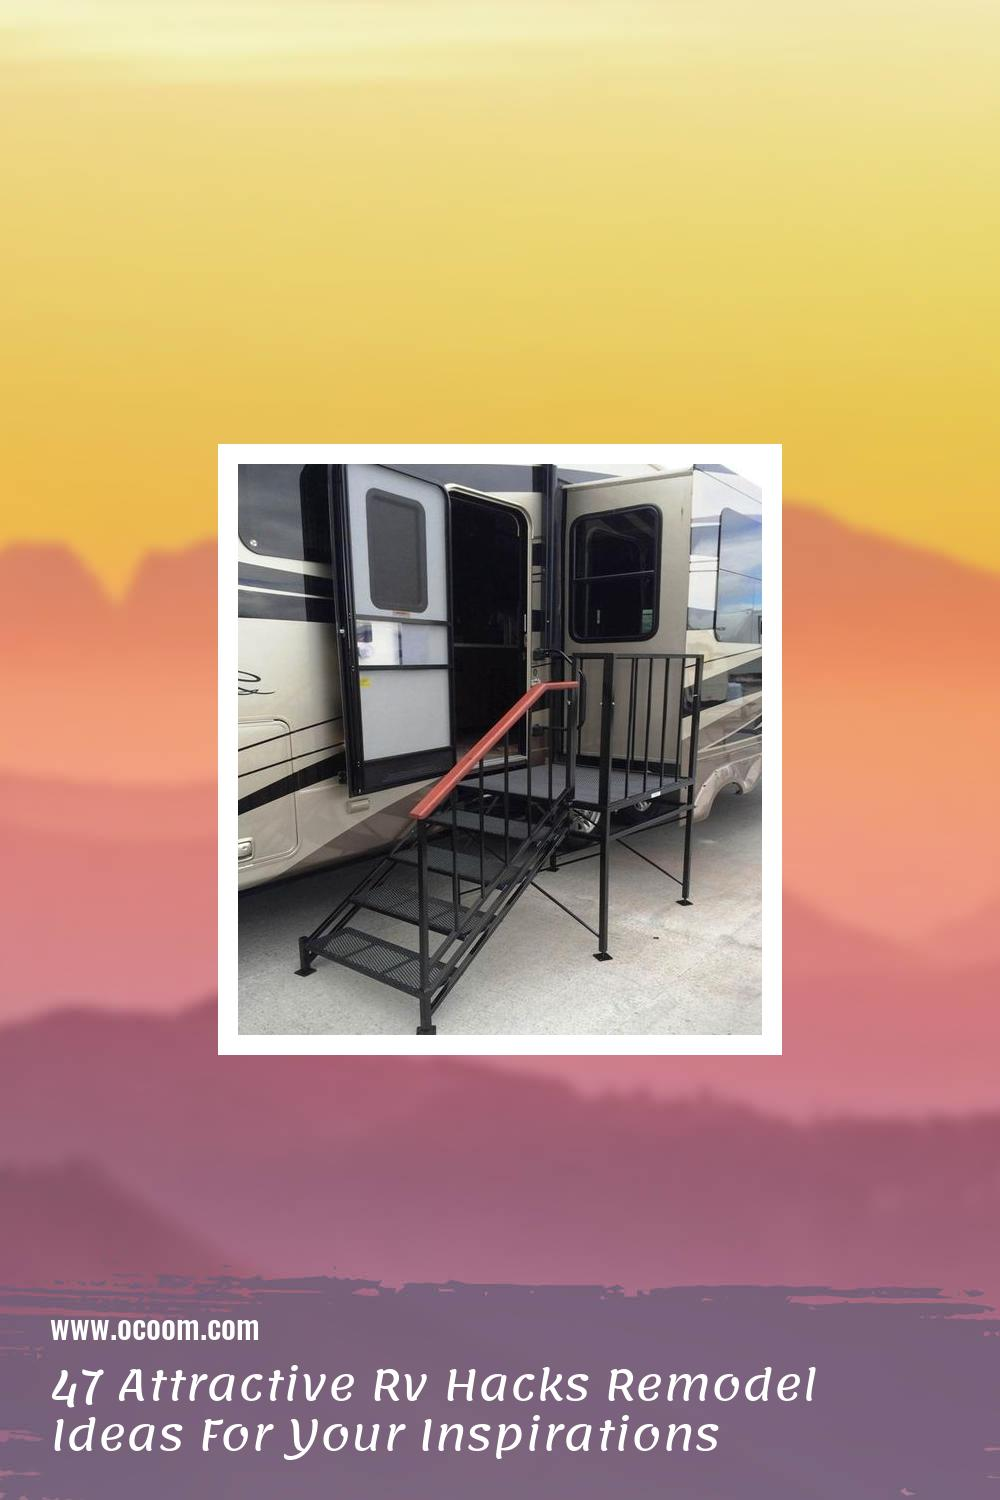 47 Attractive Rv Hacks Remodel Ideas For Your Inspirations 16